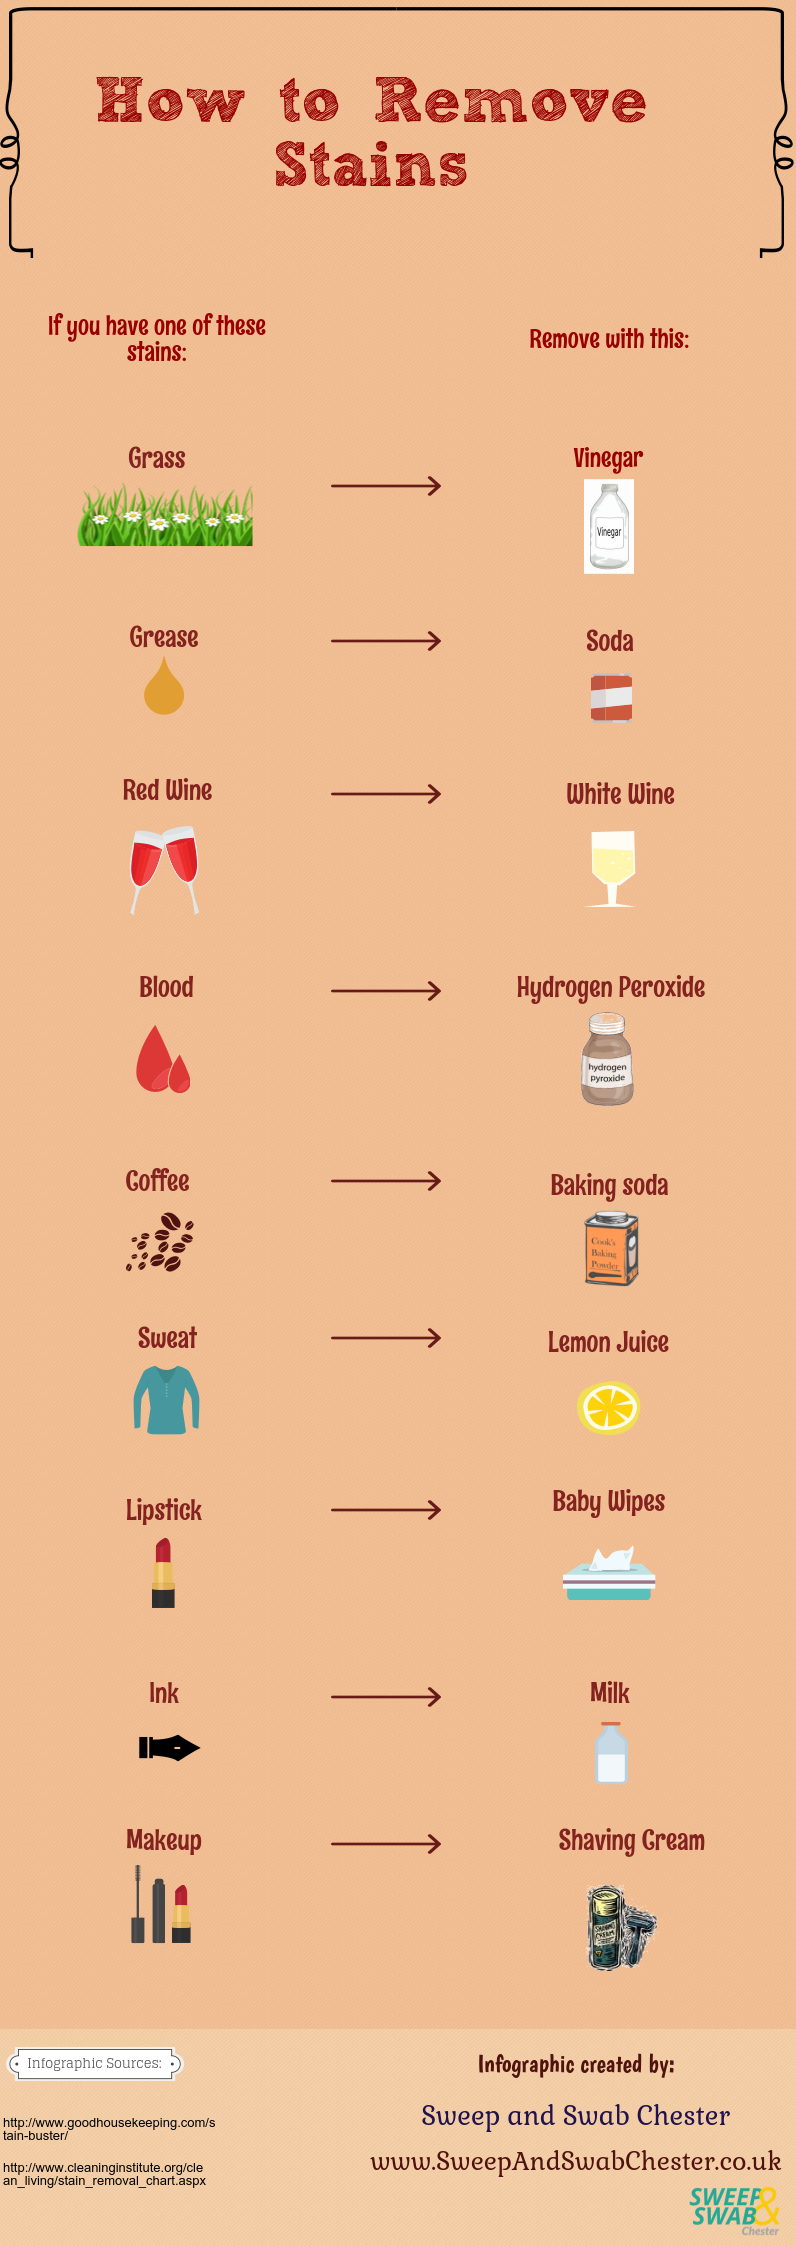 How to Remove Stains